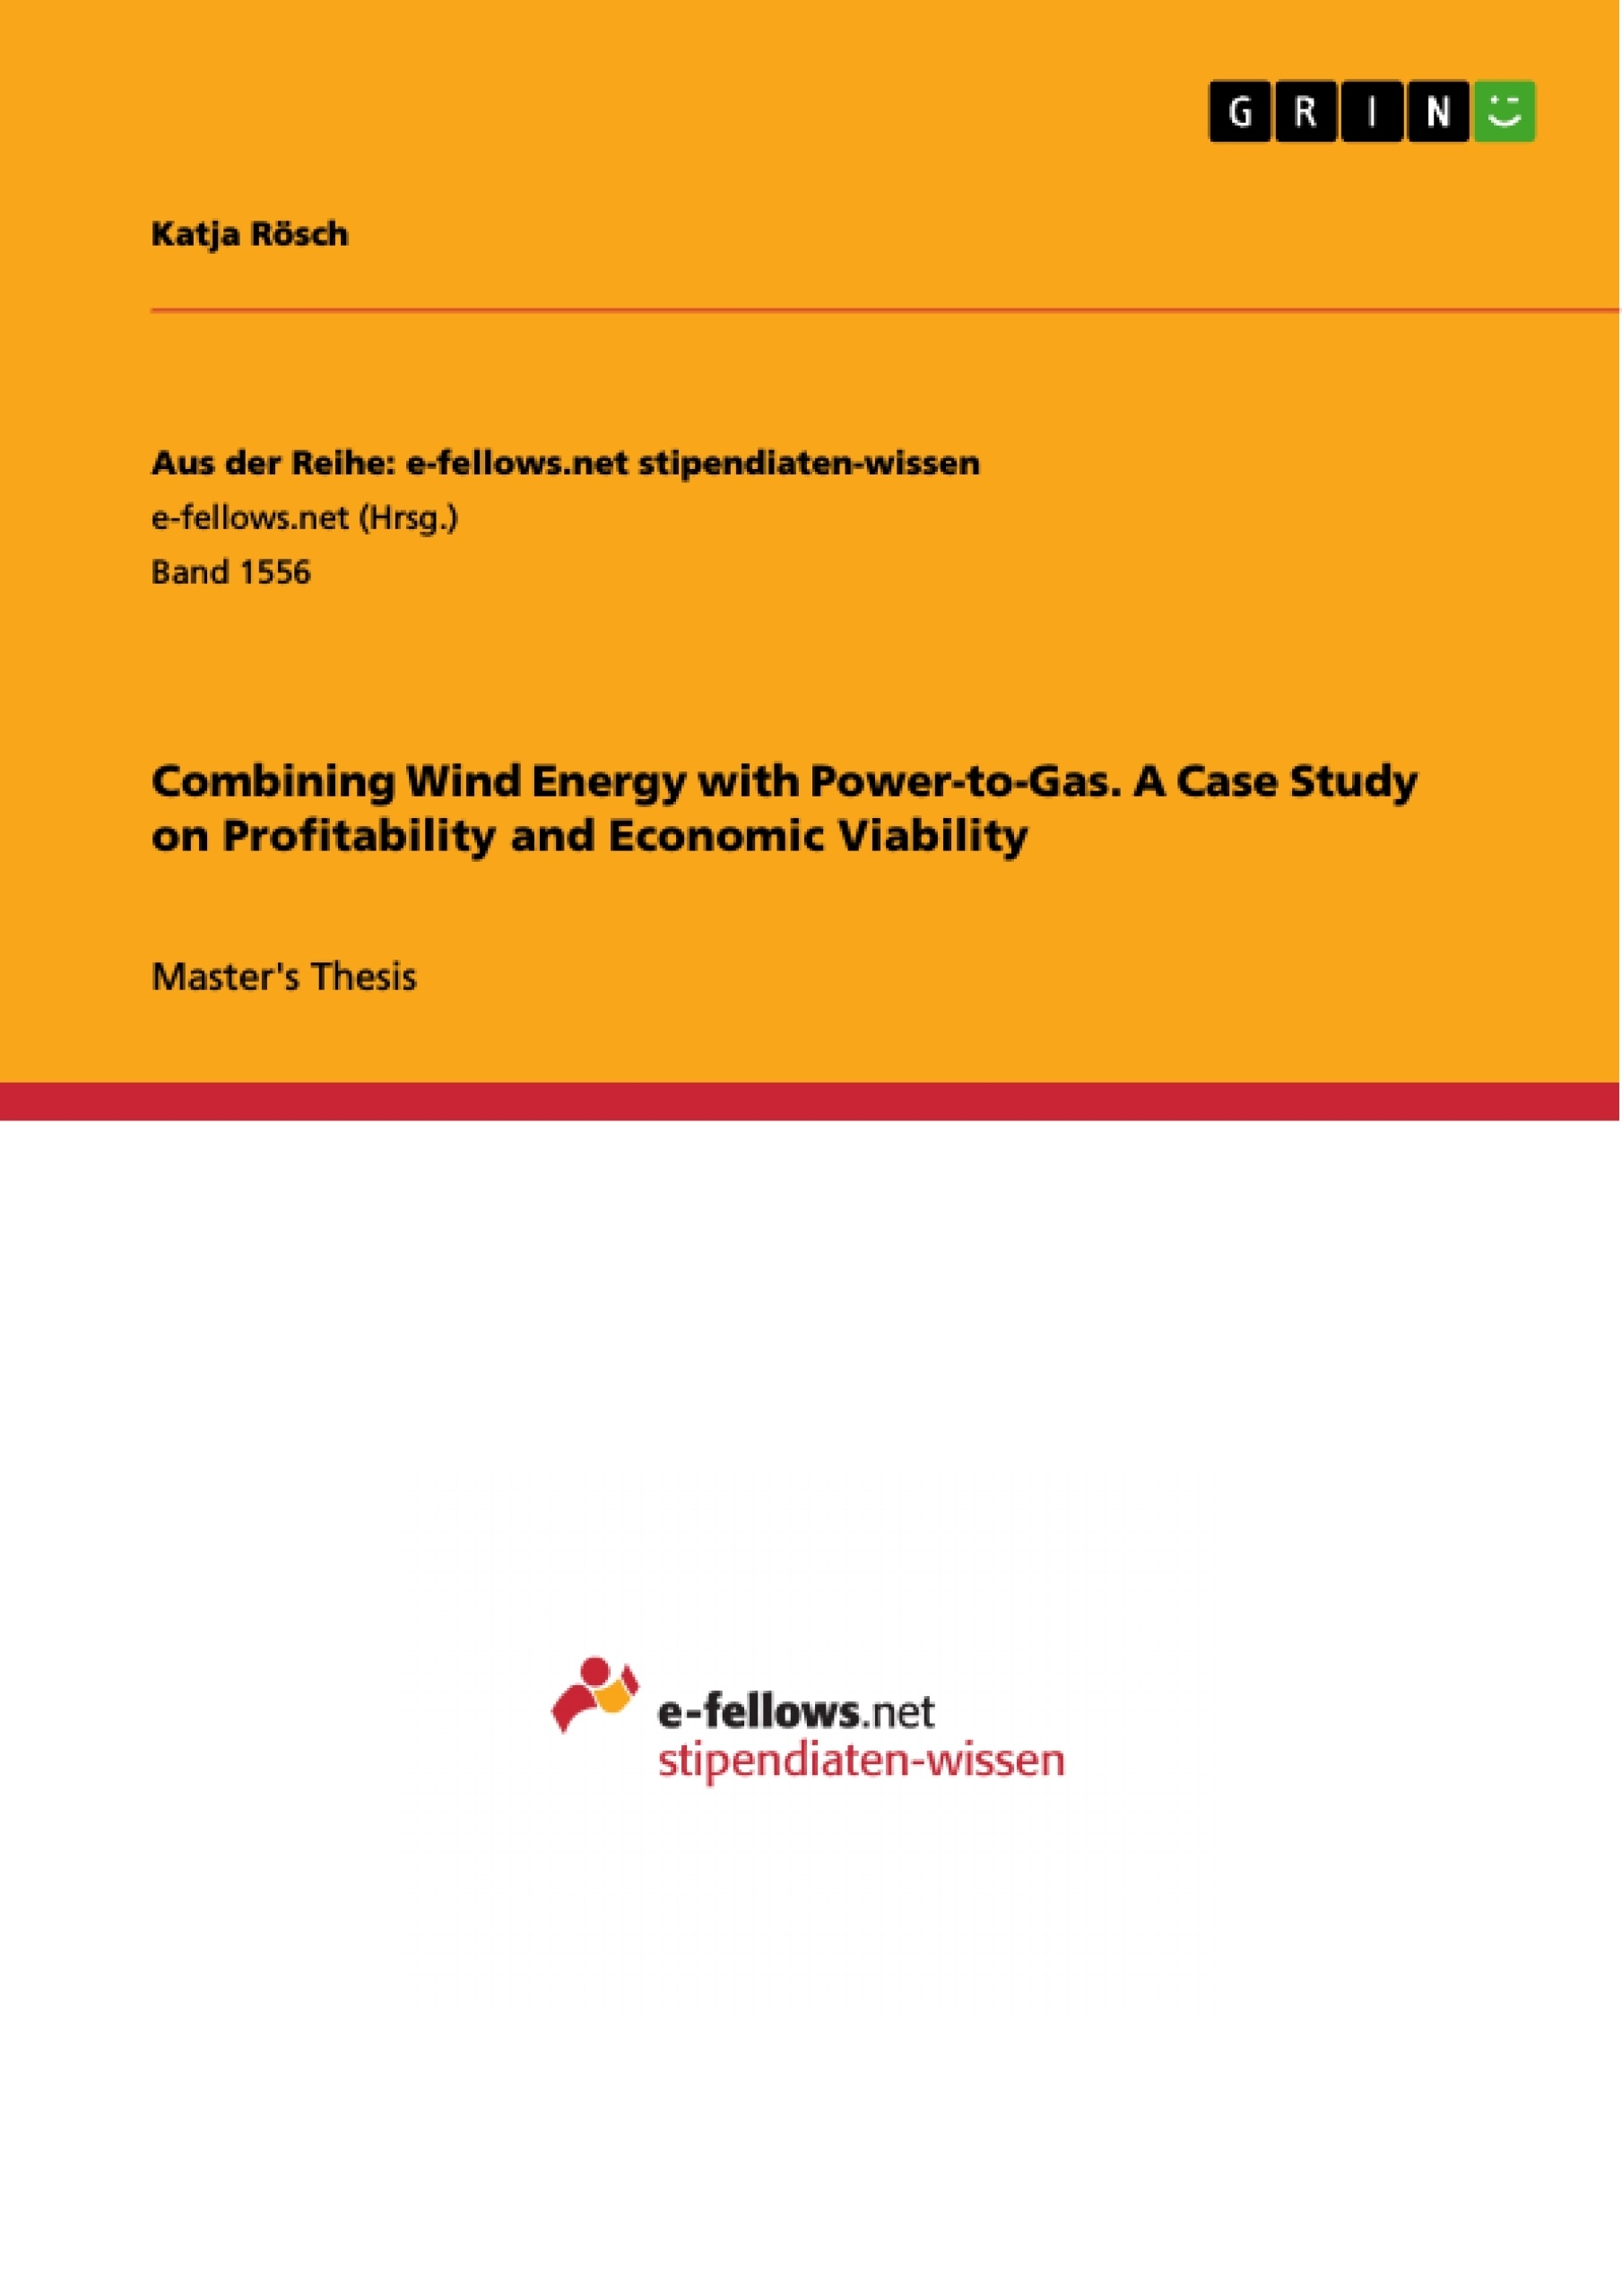 Title: Combining Wind Energy with Power-to-Gas. A Case Study on Profitability and Economic Viability